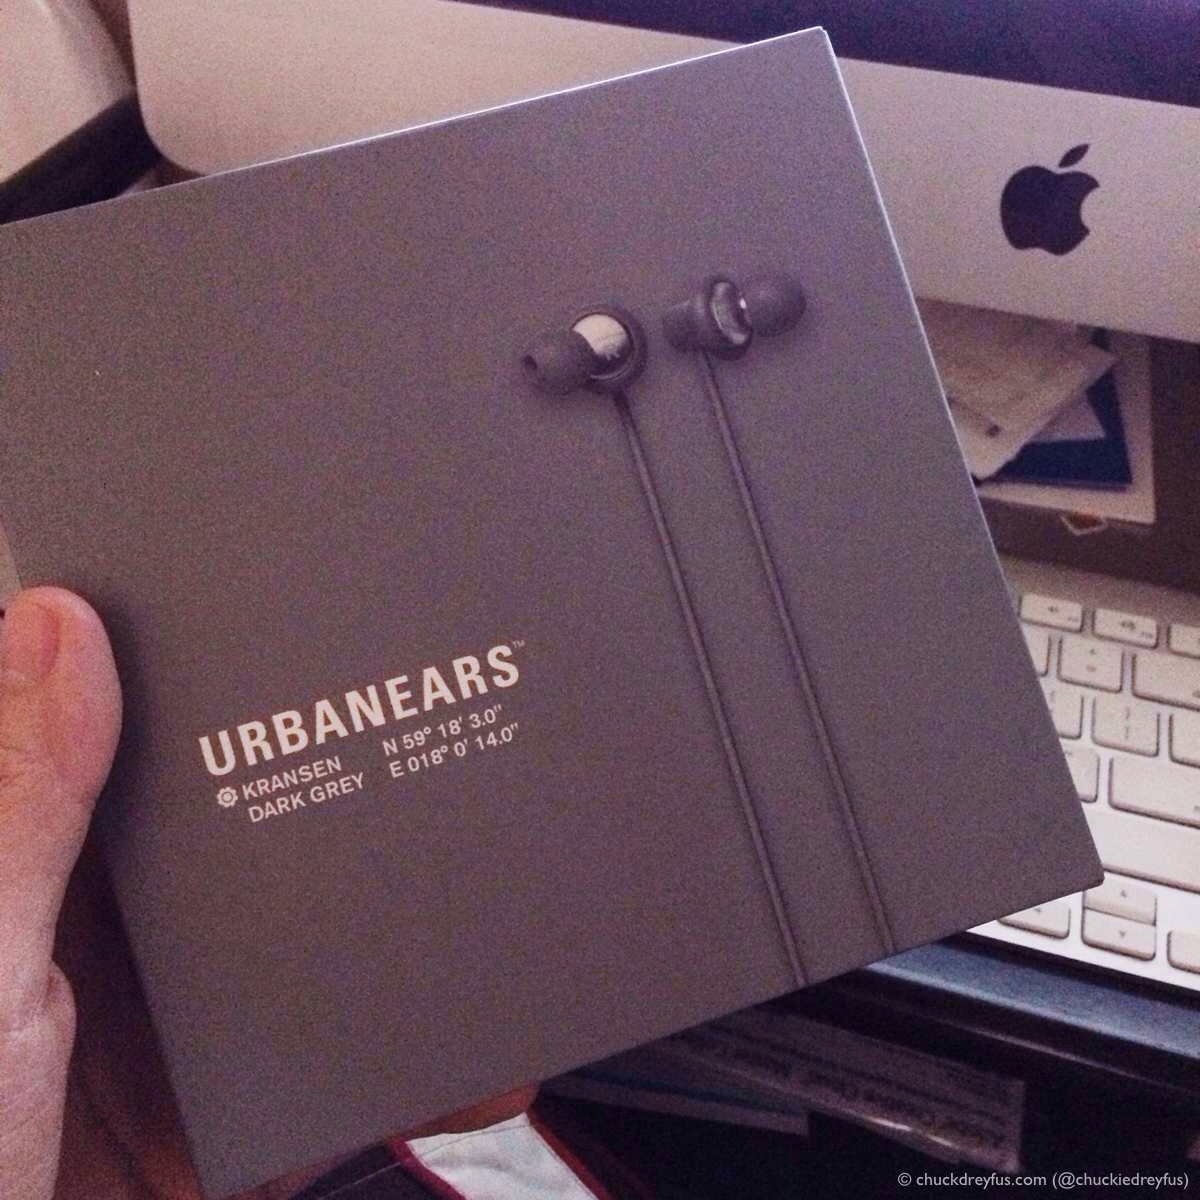 The URBANEARS Kransen